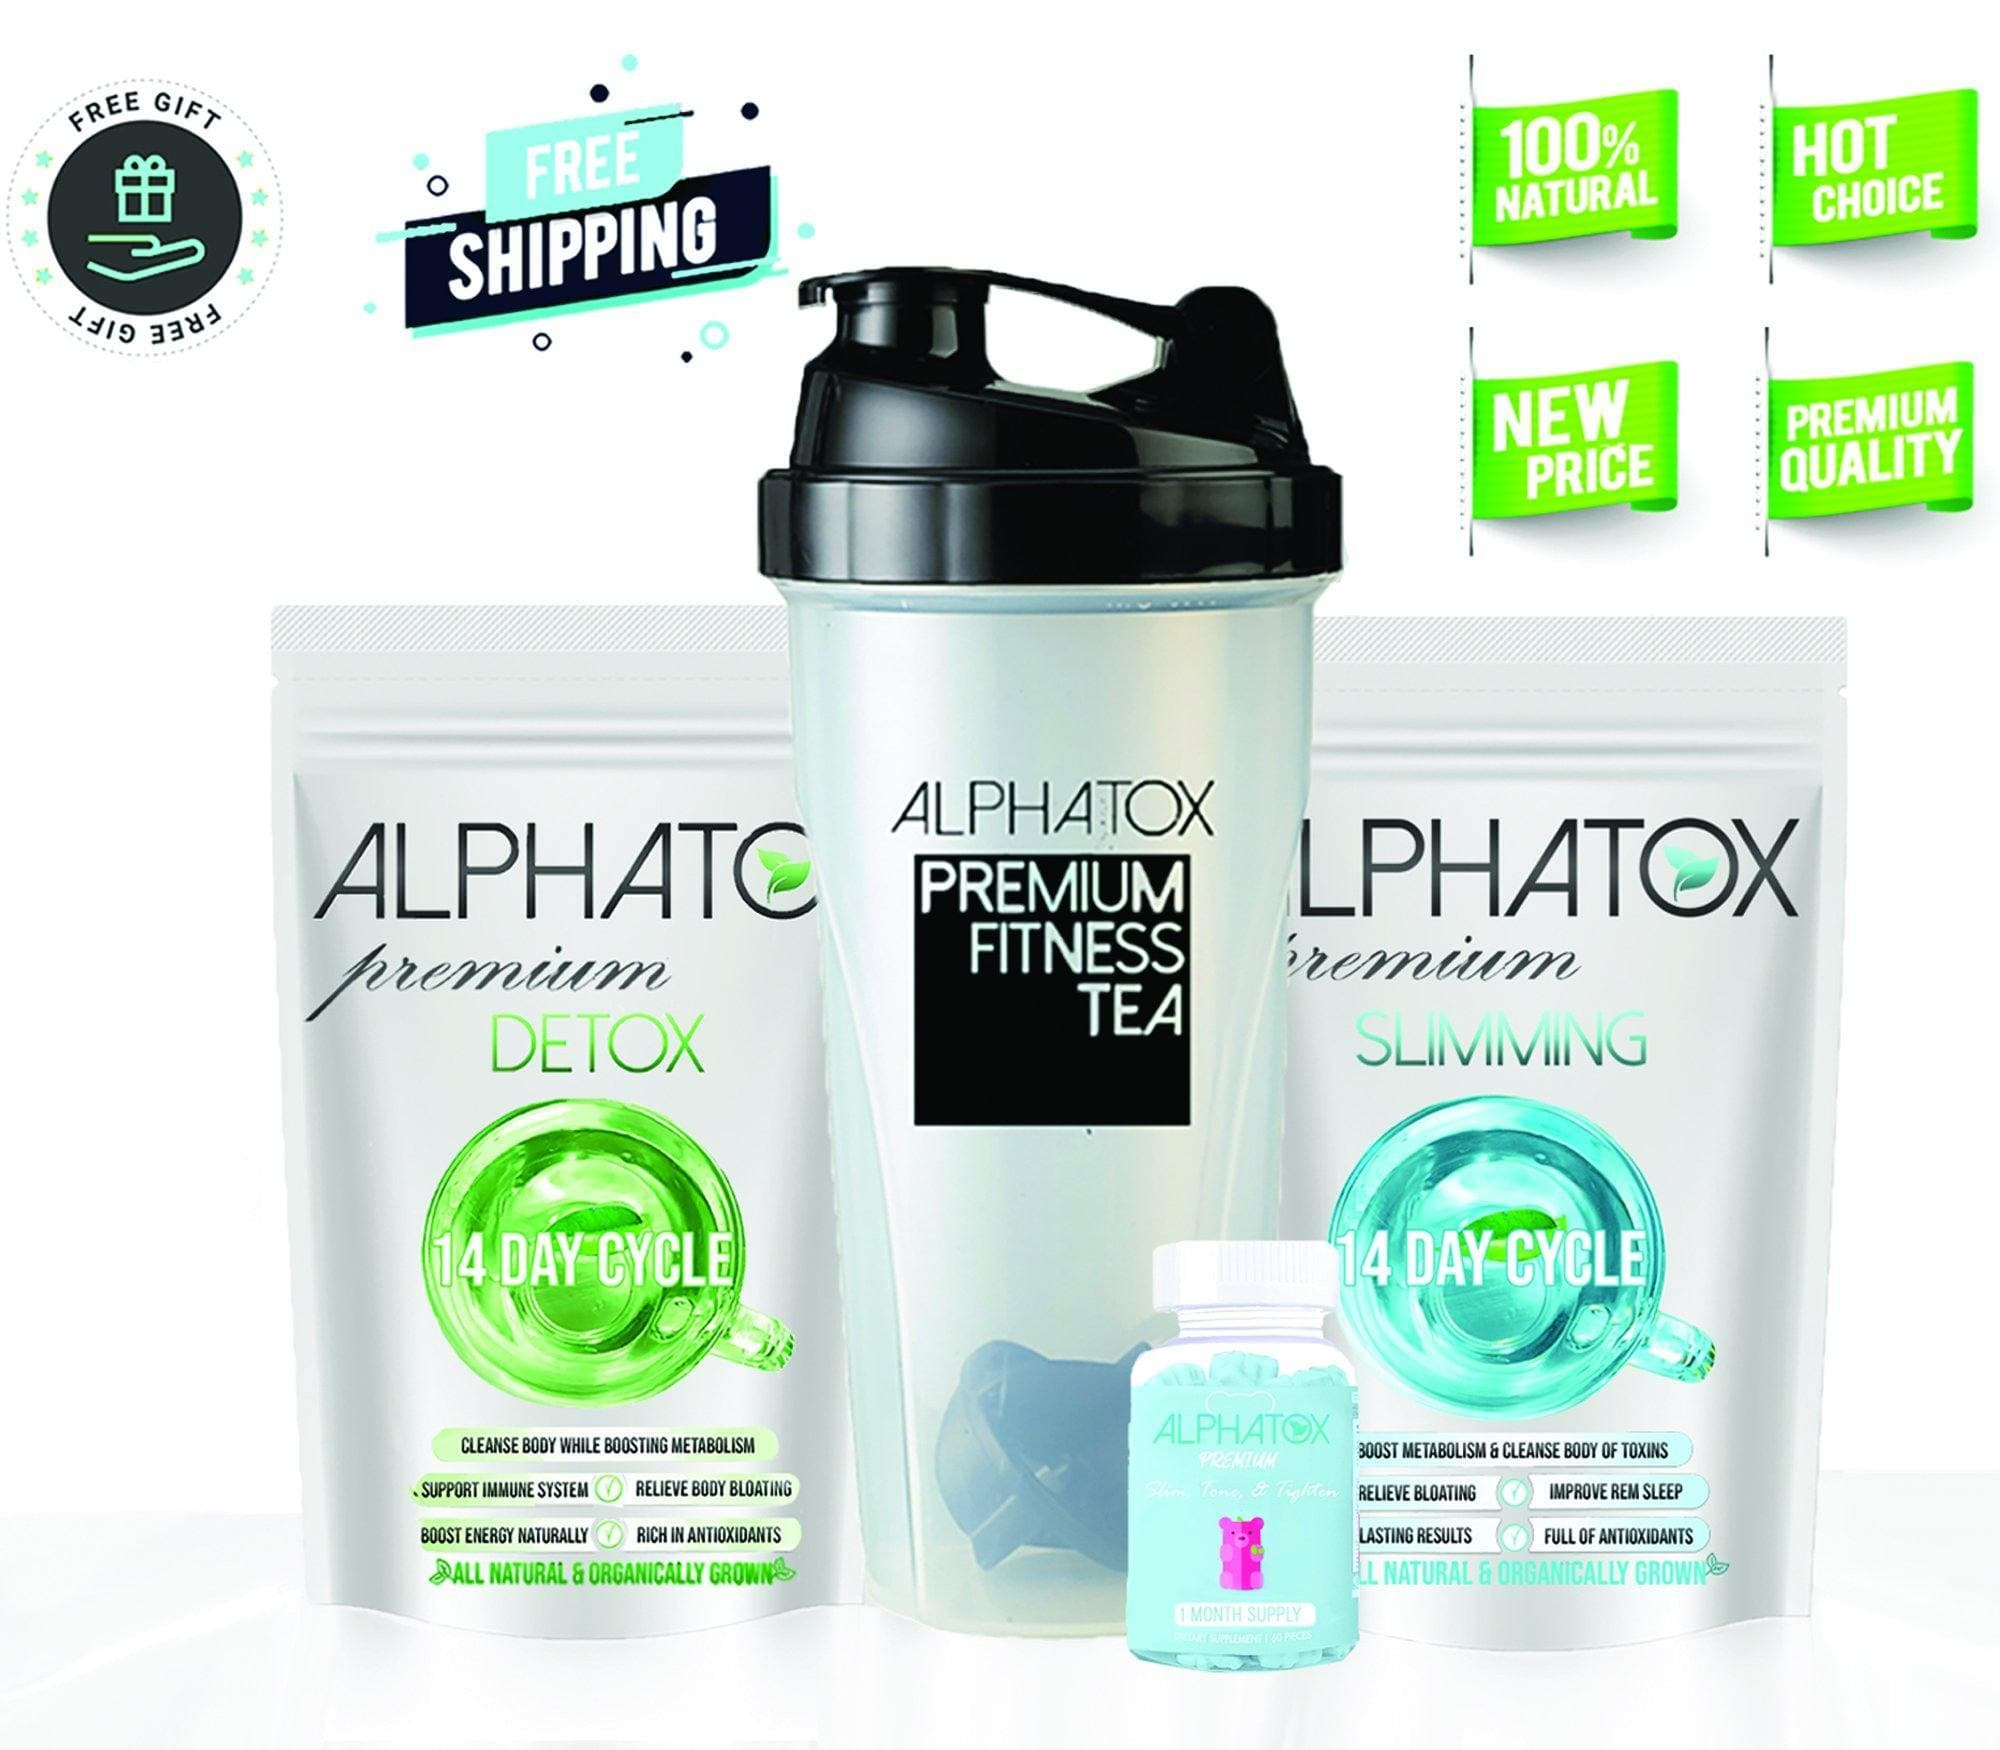 Alphatox Bundle With Toning  Gummies - Alphatox Premium Fitness Teas